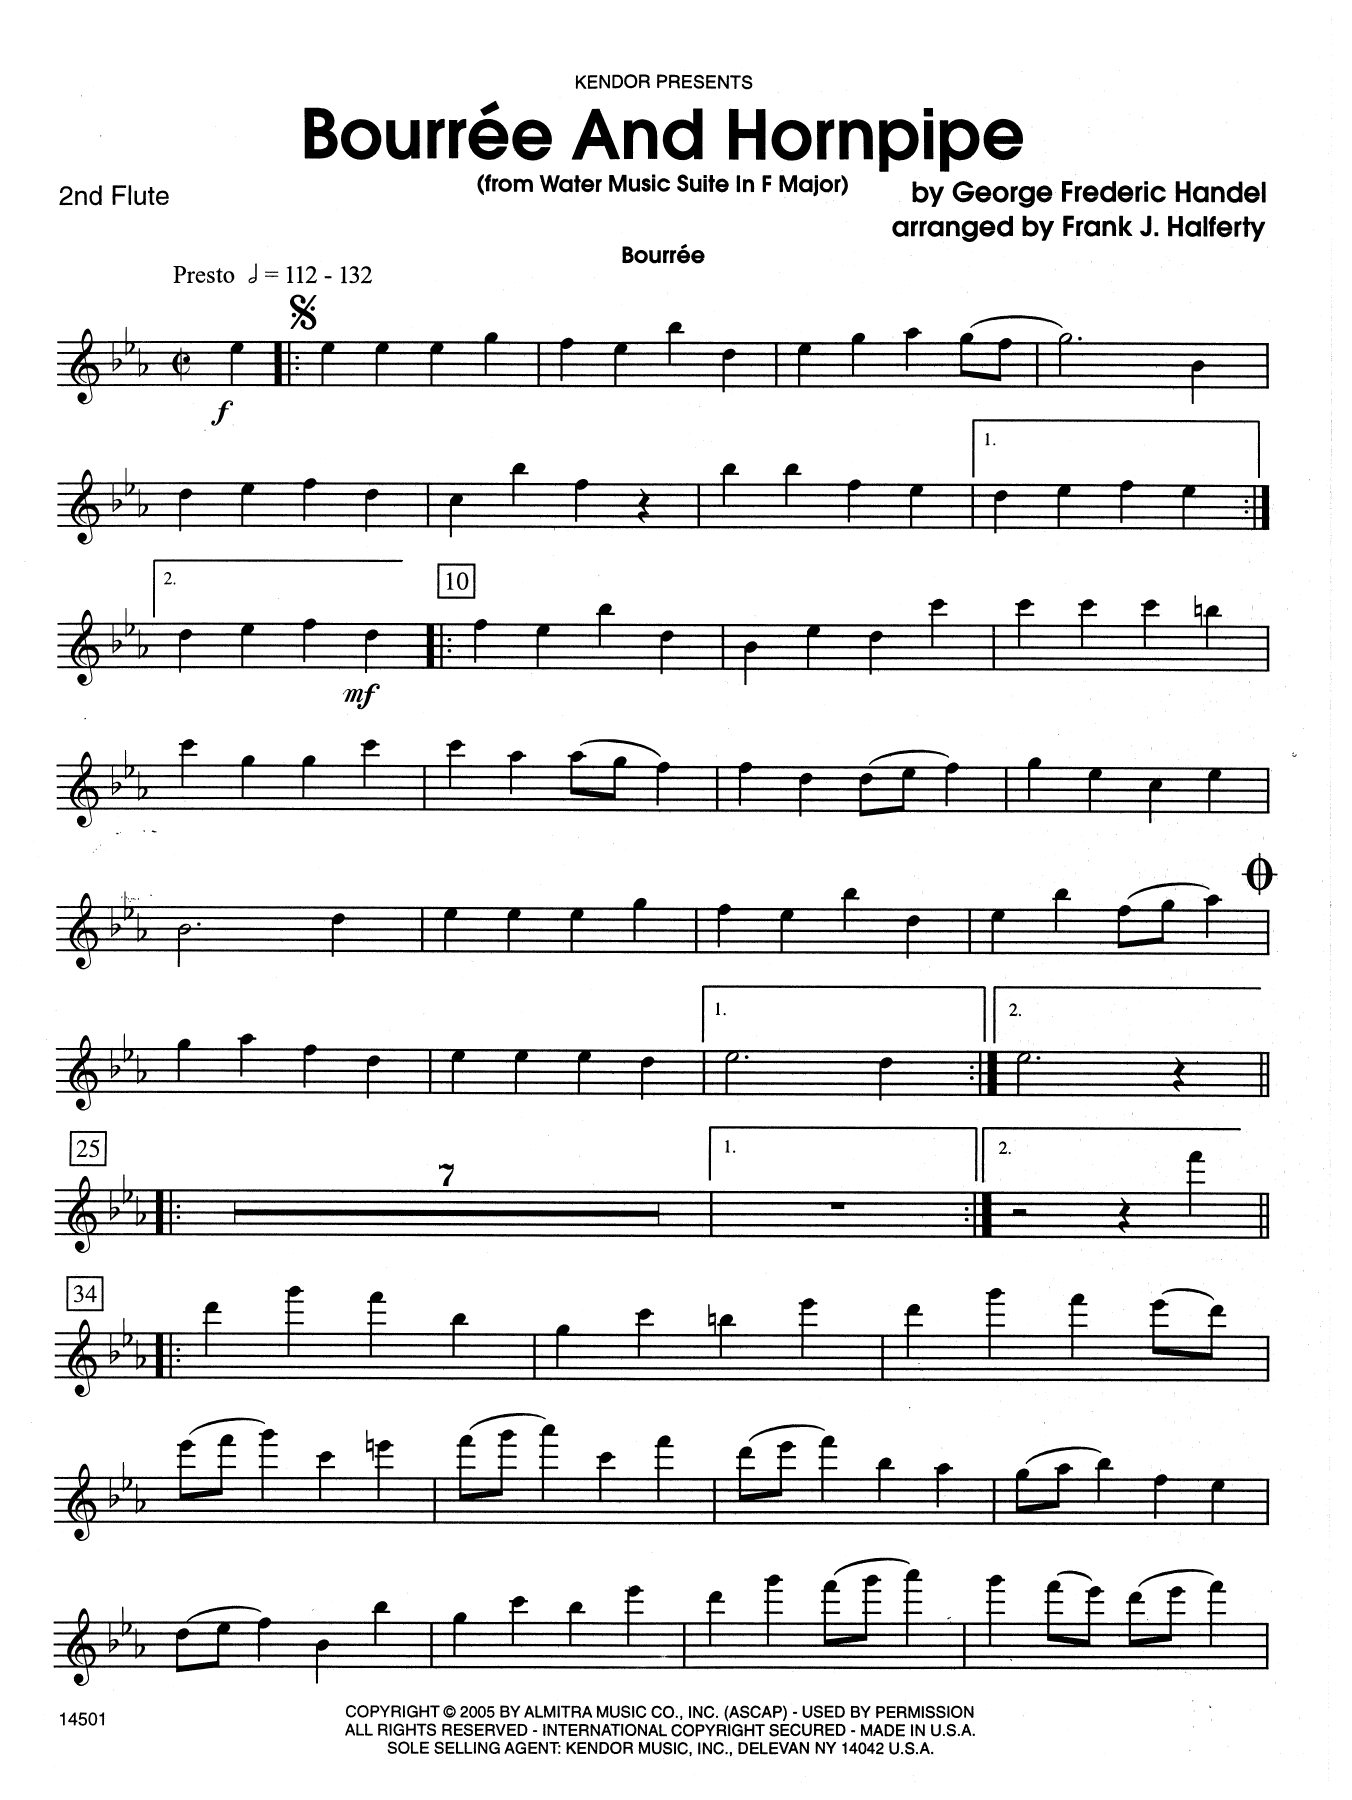 Bourree And Hornpipe (from Water Music Suite In F Major) - 2nd Flute Sheet Music